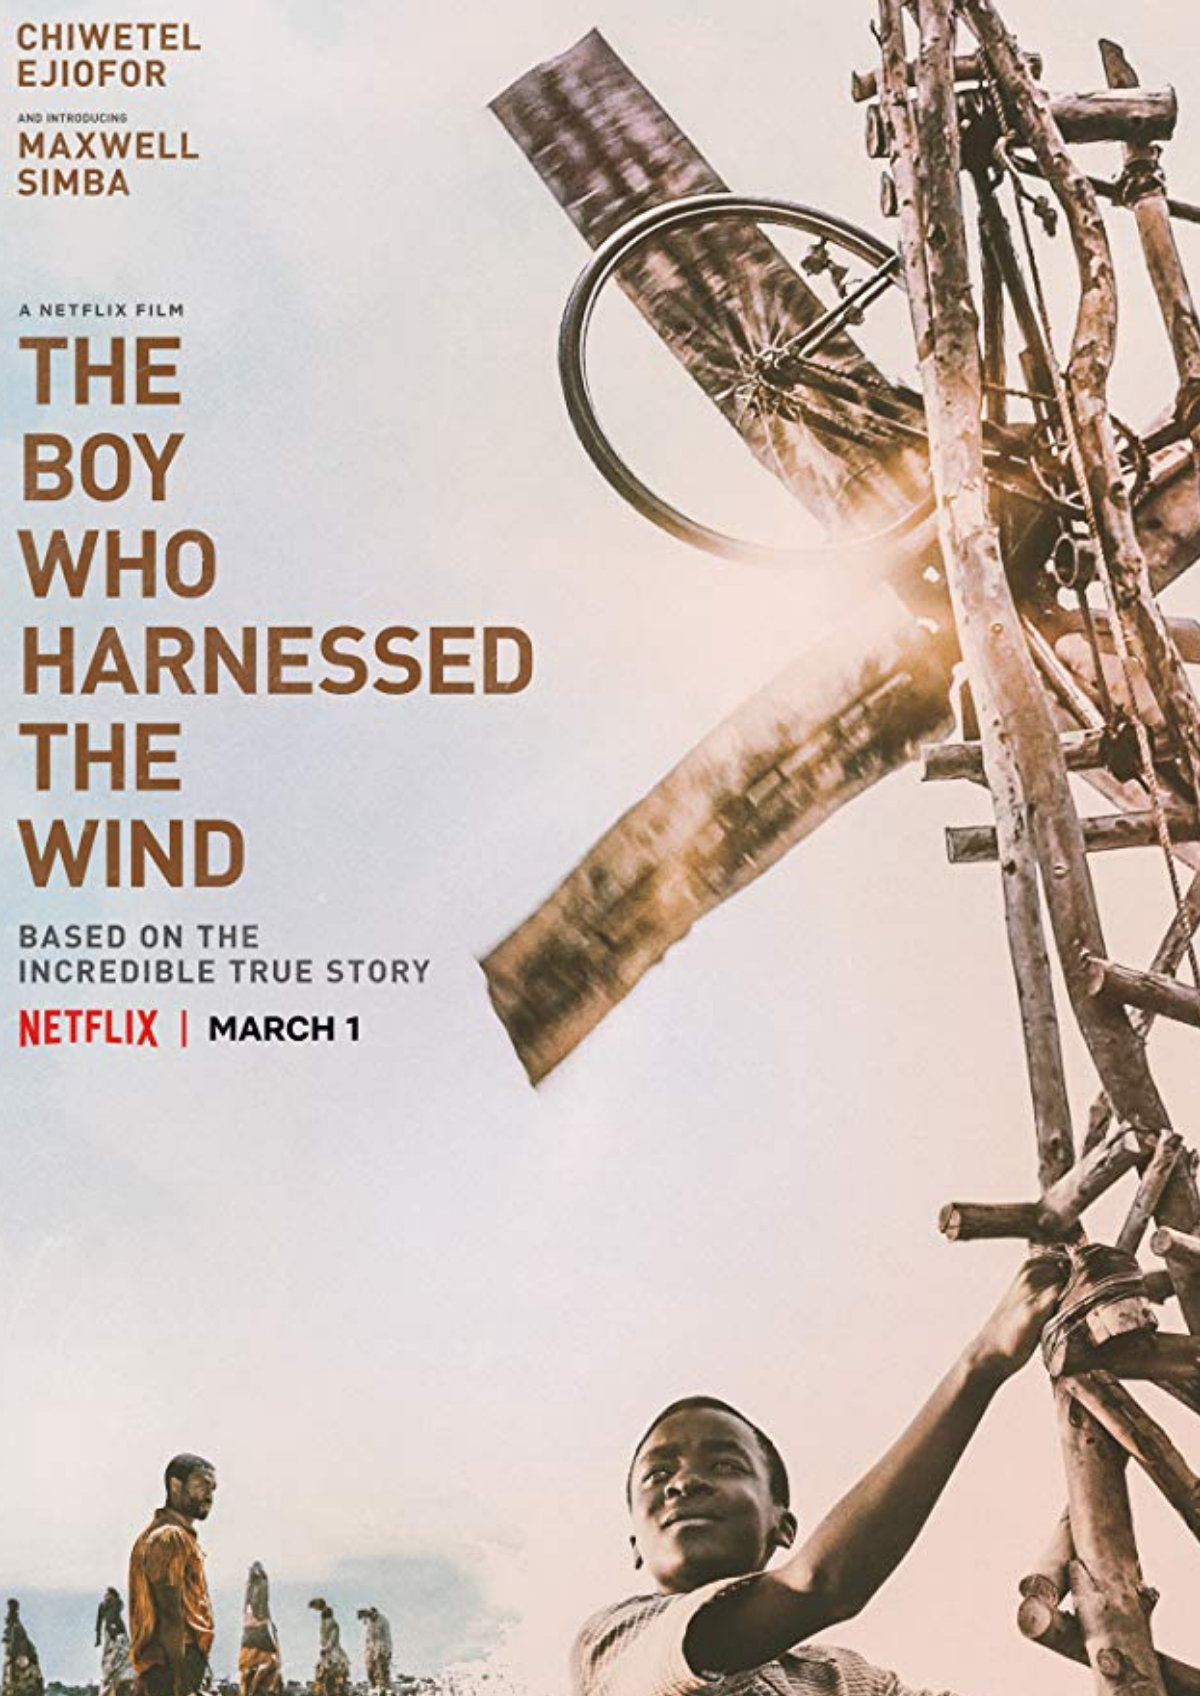 'The Boy Who Harnessed The Wind' movie poster